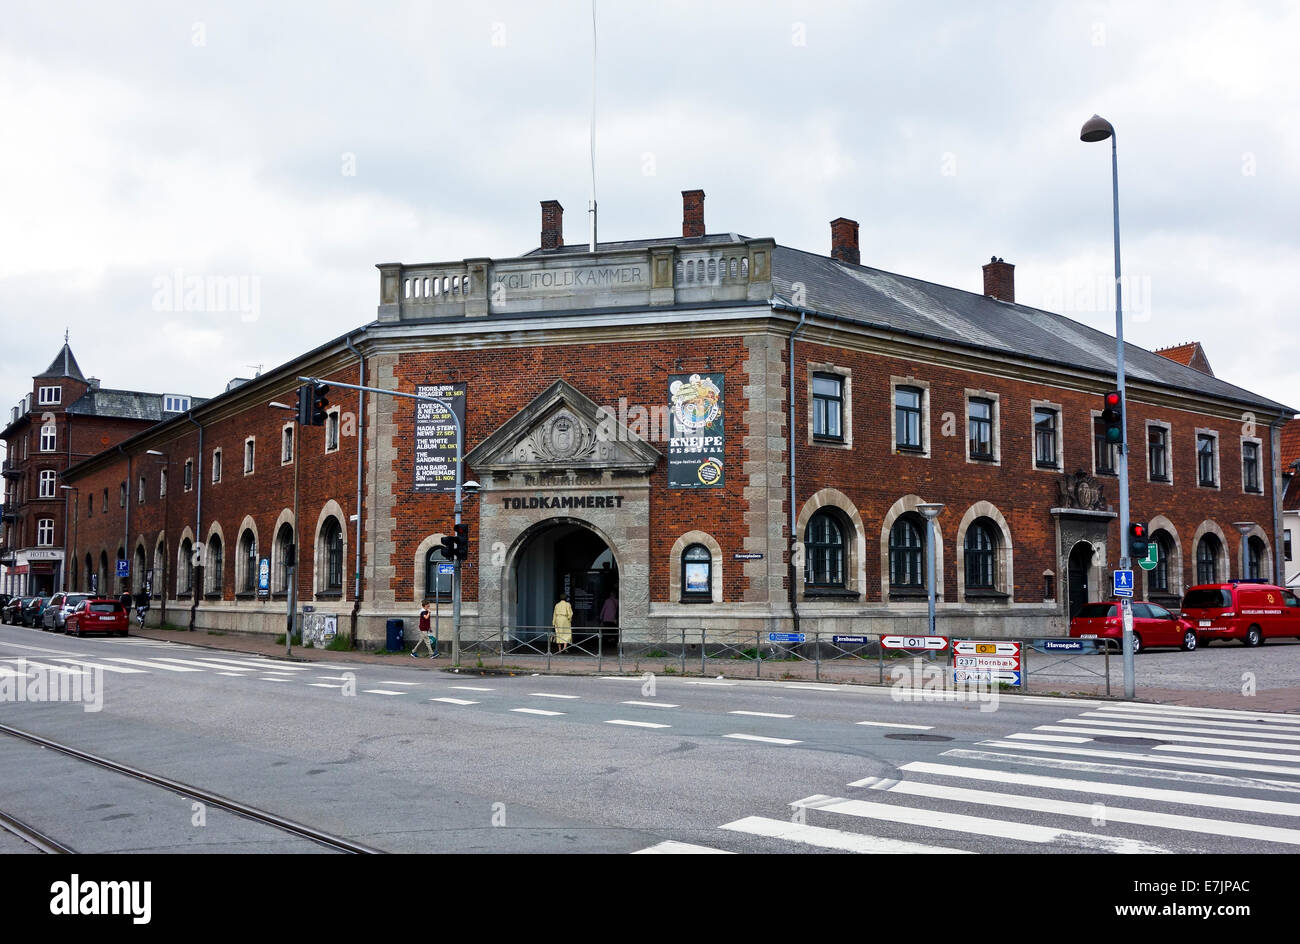 Kulturhuset Toldkammeret (The House of Culture) in the old Toldkammer in Elsinore Denmark - Stock Image